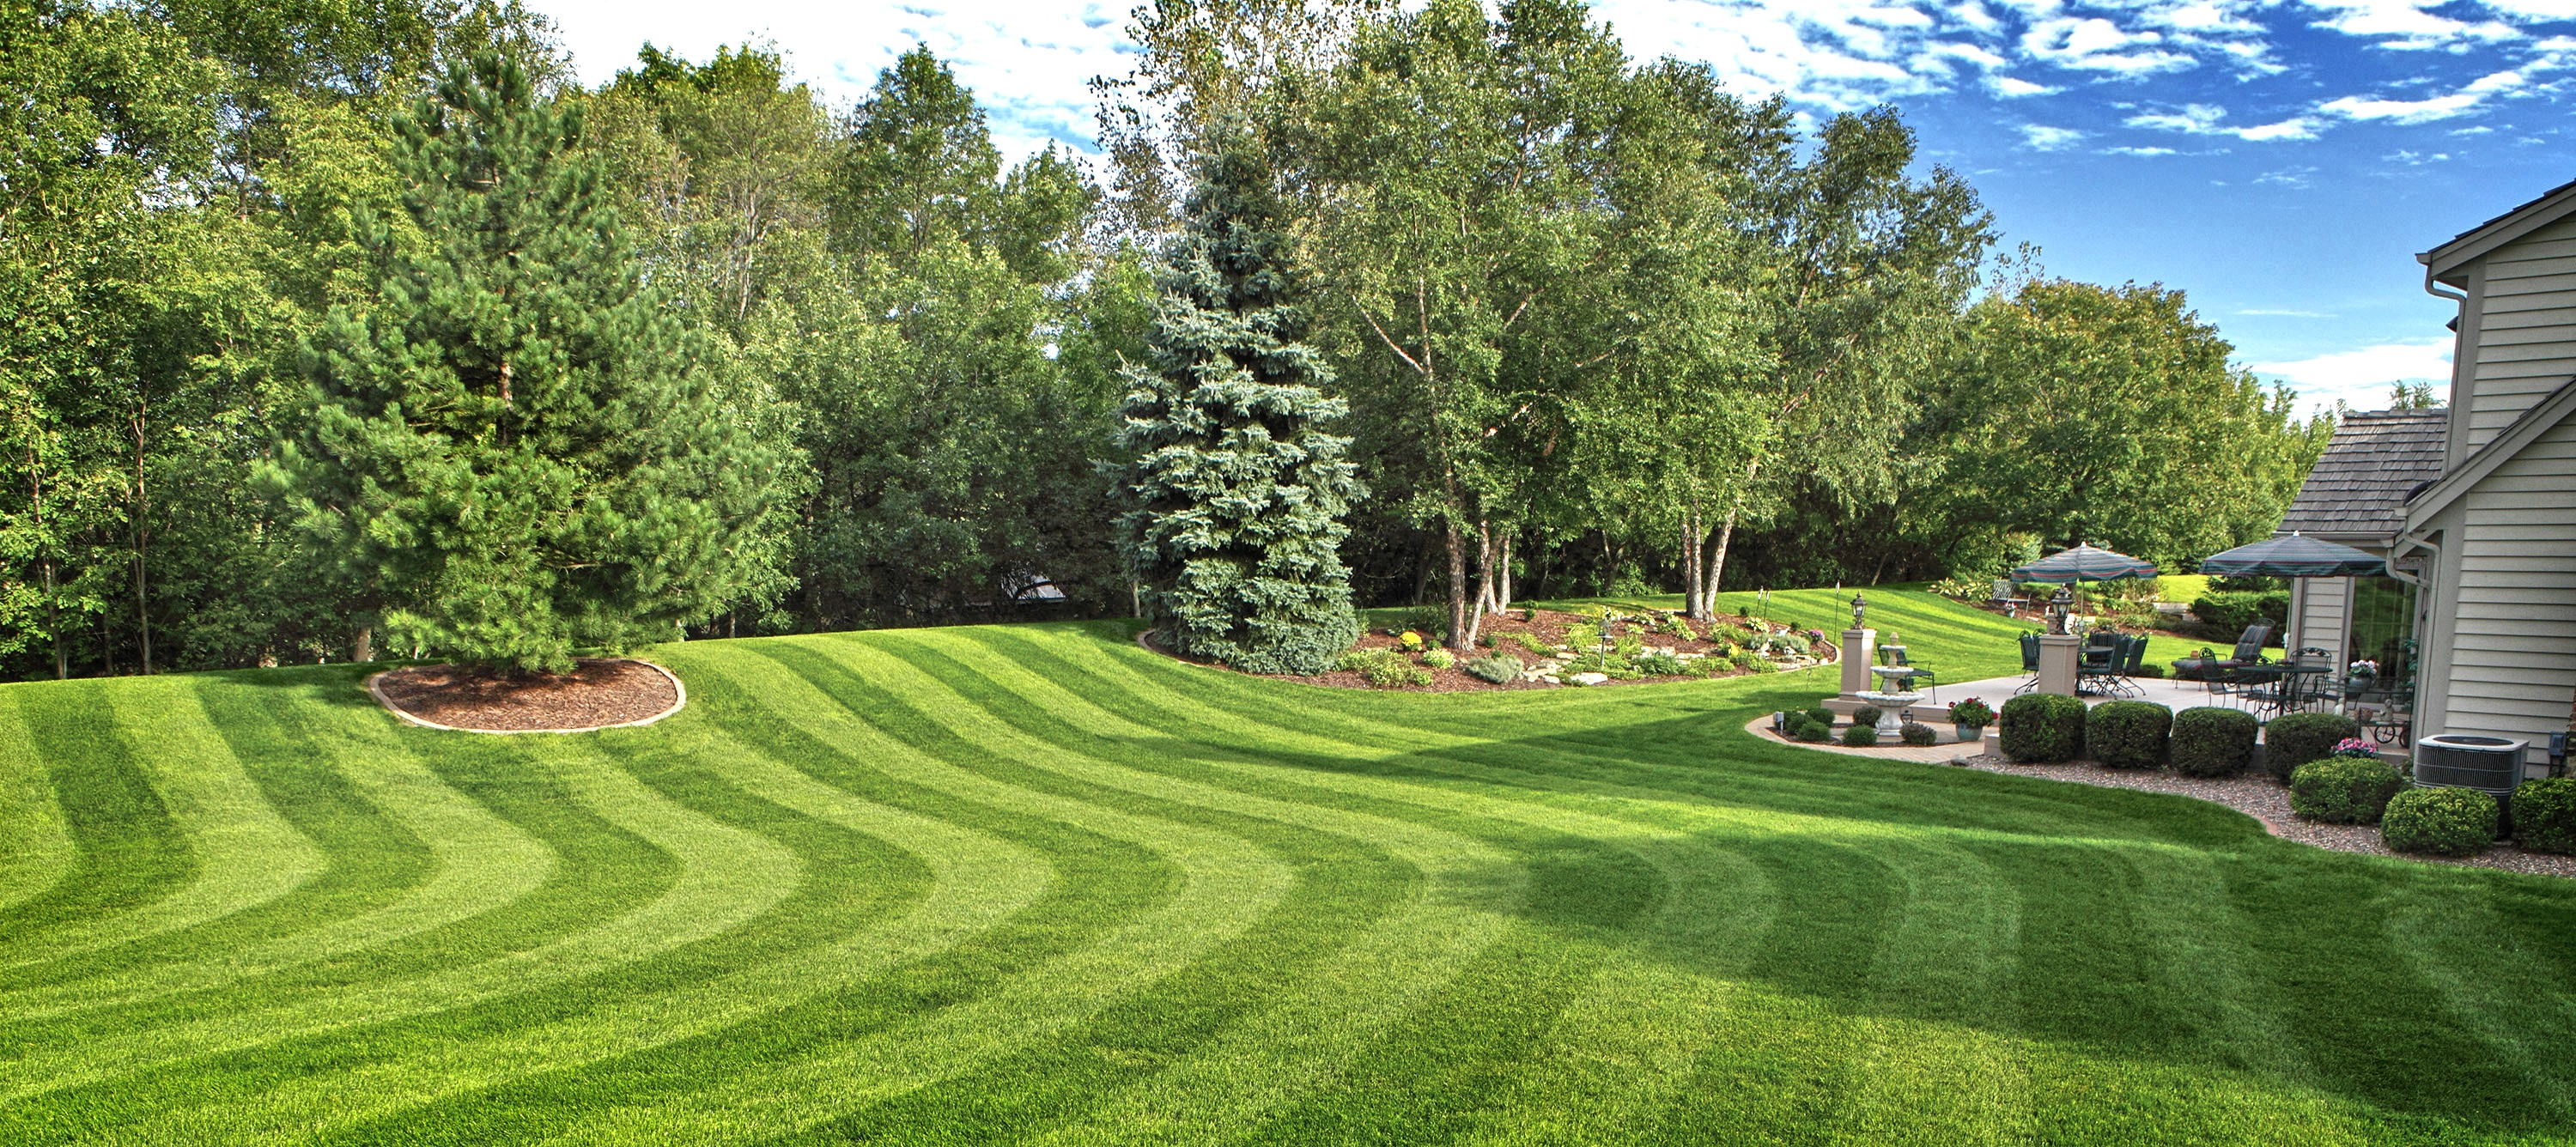 Lawn Care In Salisbury Md Give Stylish Look And Perfect Care To By Trec Lawn Care Medium